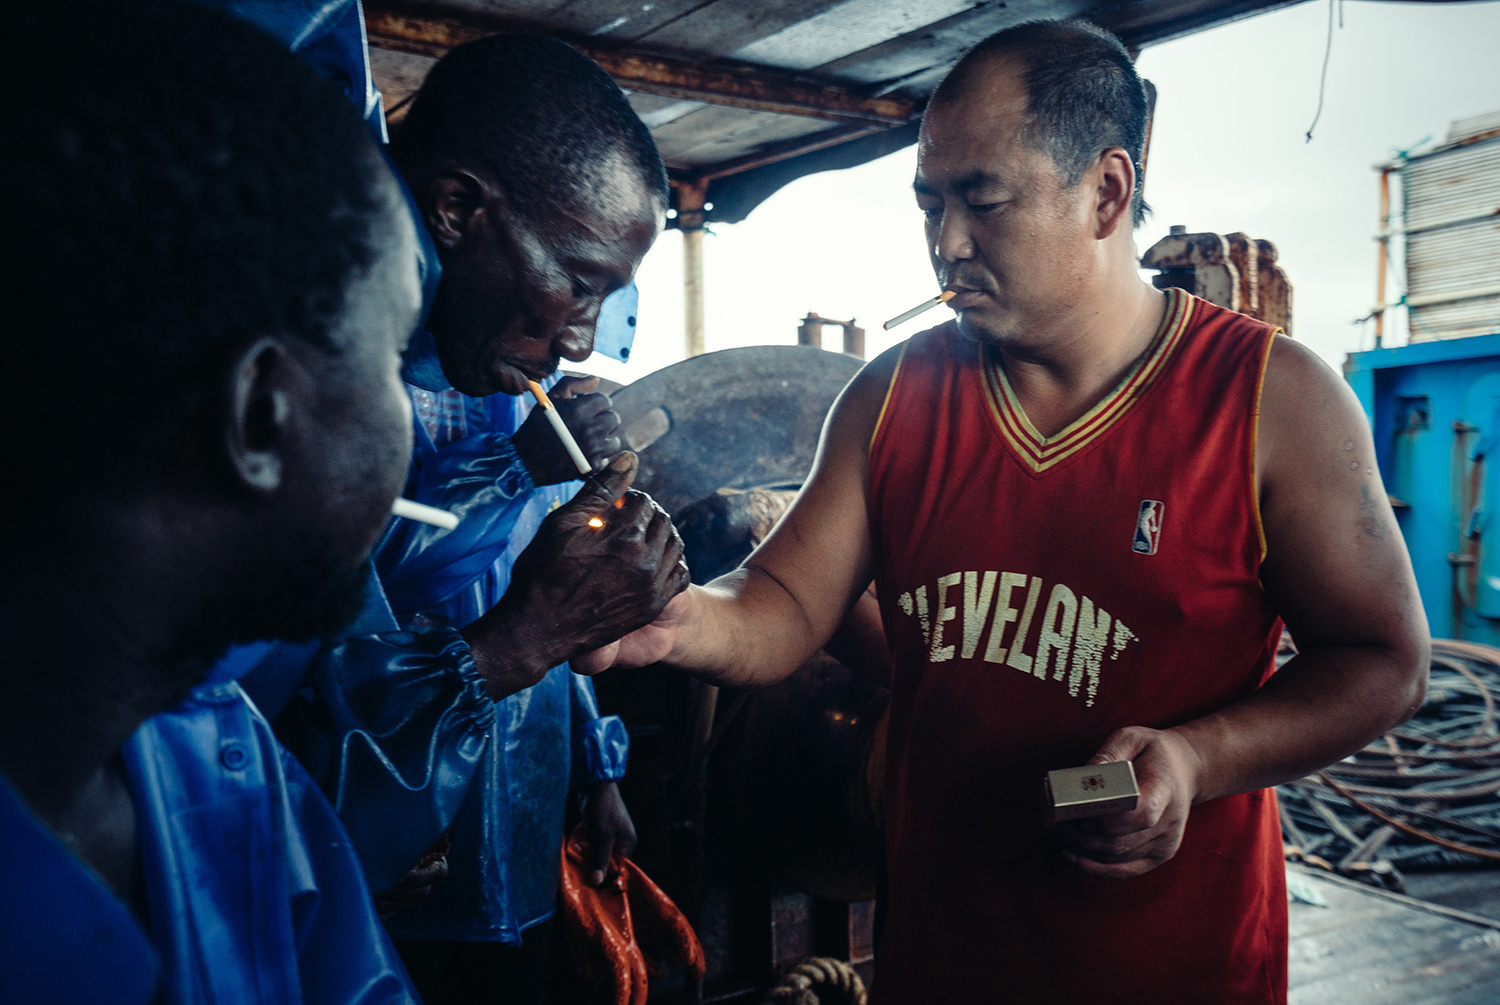 First Mate Wang passes cigarettes to a coworker on his ship, July 25, 2016. The African and Chinese crewmembers communicate through hand gestures and a handful of simple shared words and phrases.